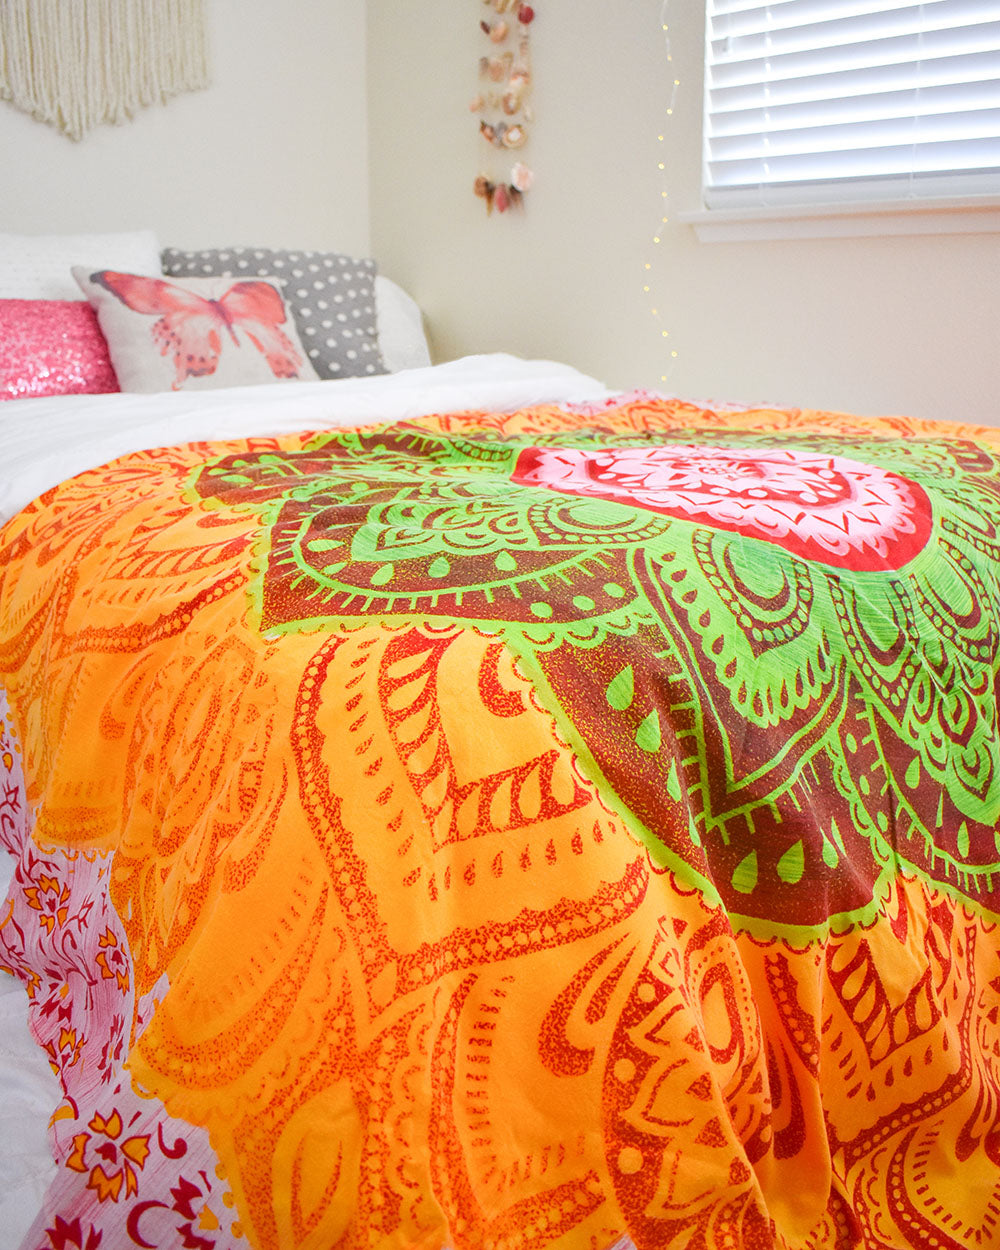 The coolest way to add color and drama to any room is with a tapestry, and the dorm room is no exception. A Boho Roundie can be used in a variety of ways to add color and dimension to your room. Try it on the bed, on the wall, draped over a chair, or even on the floor.